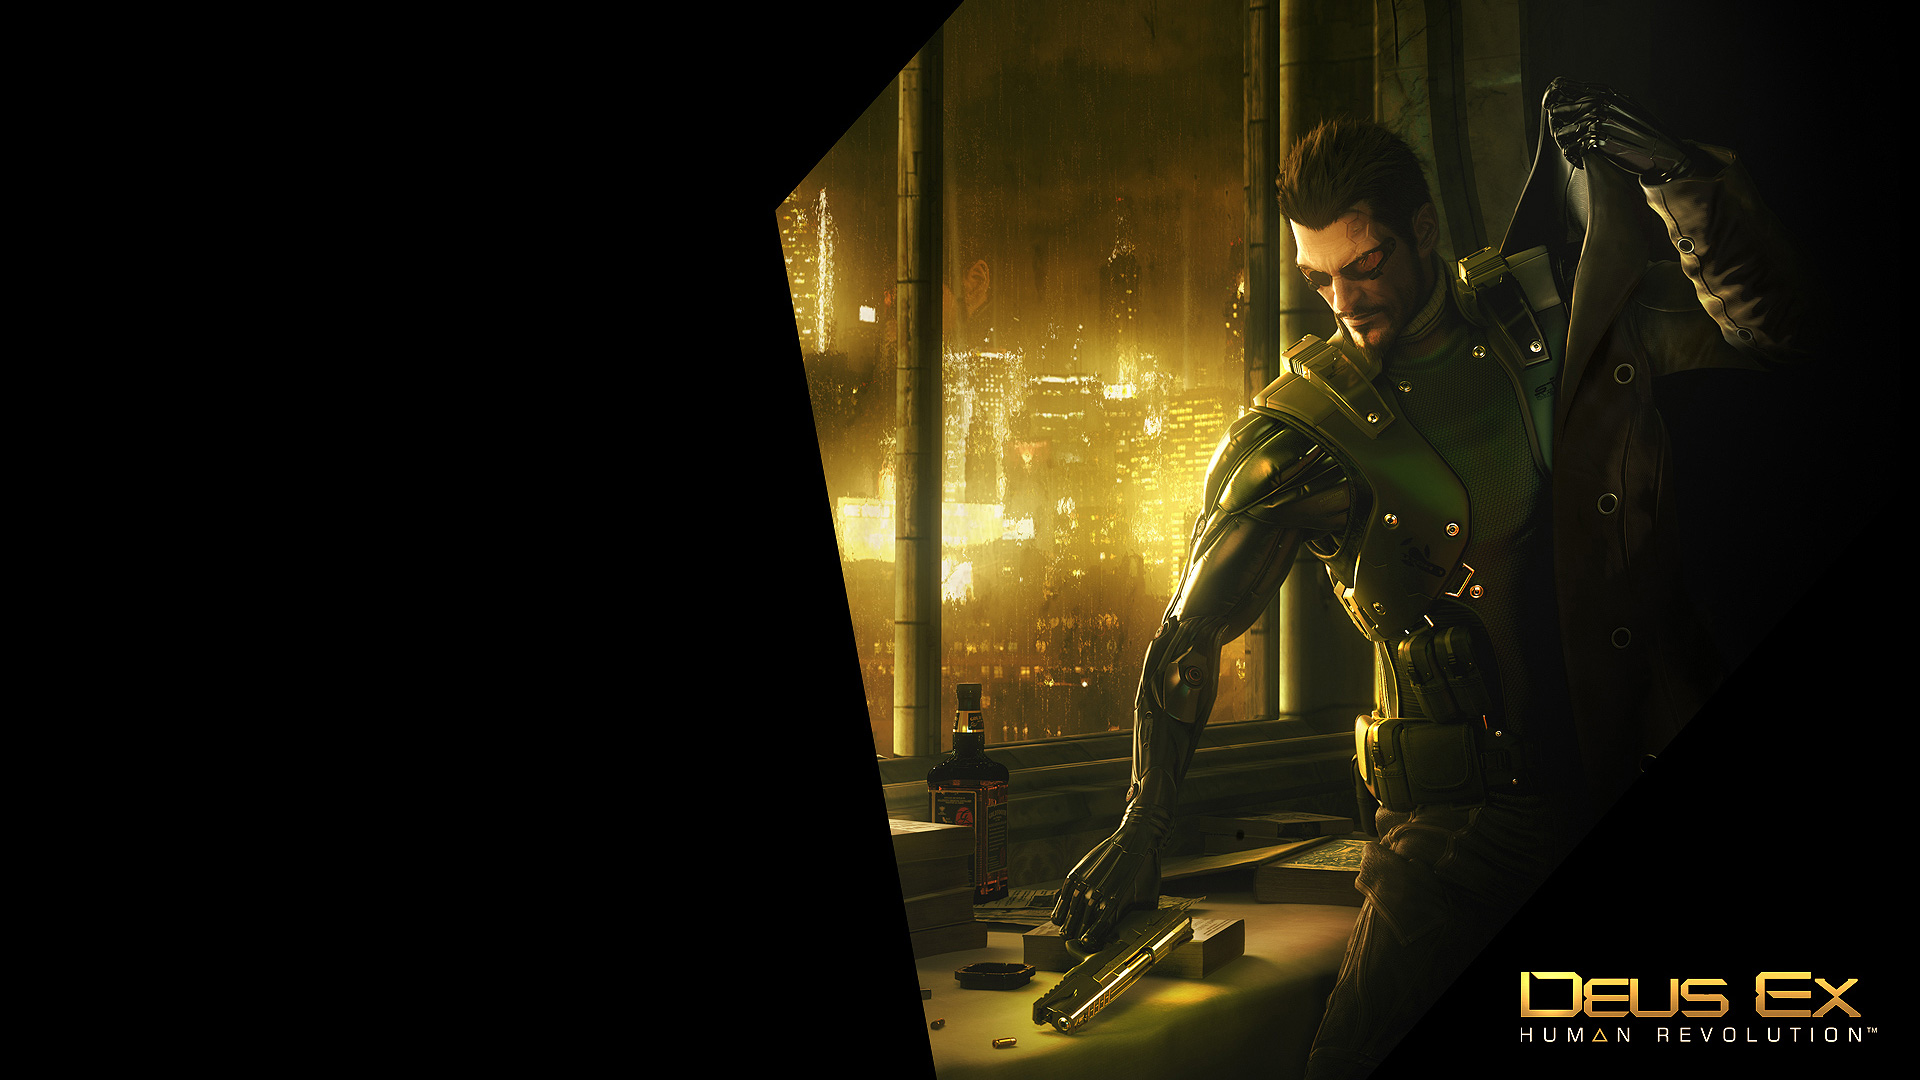 Deus Ex: Human Revolution Wallpaper in 1920x1080